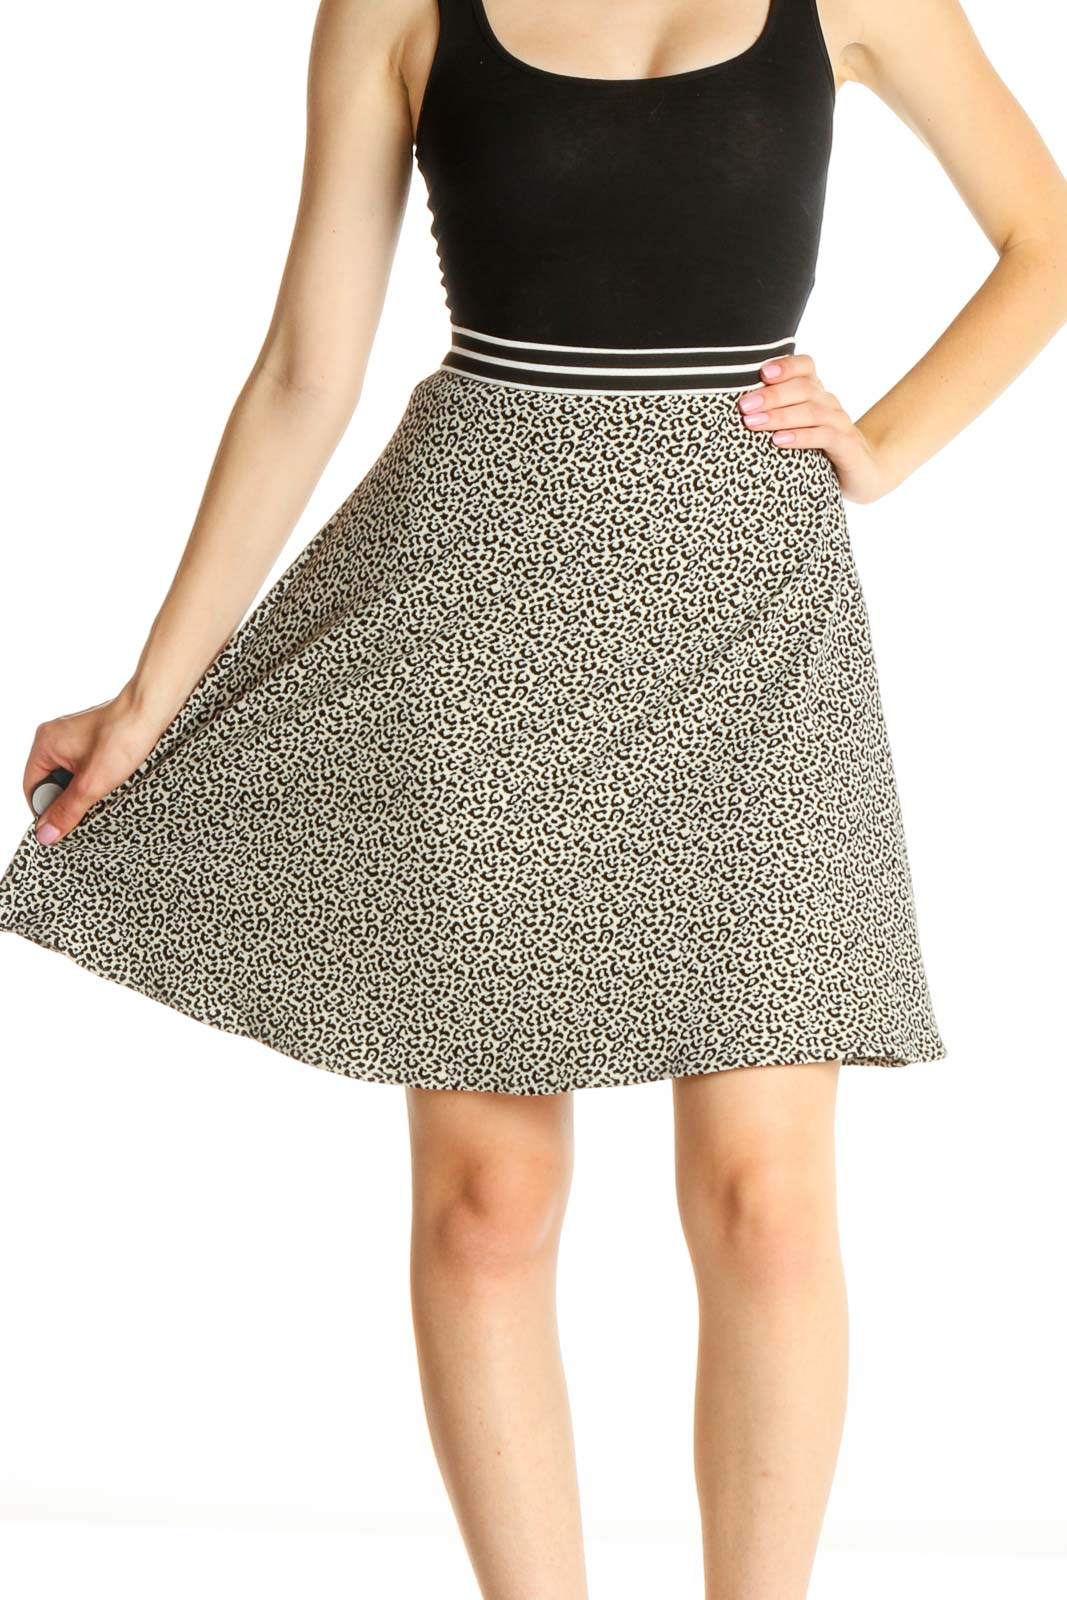 White Animal Print Chic A-Line Skirt Front